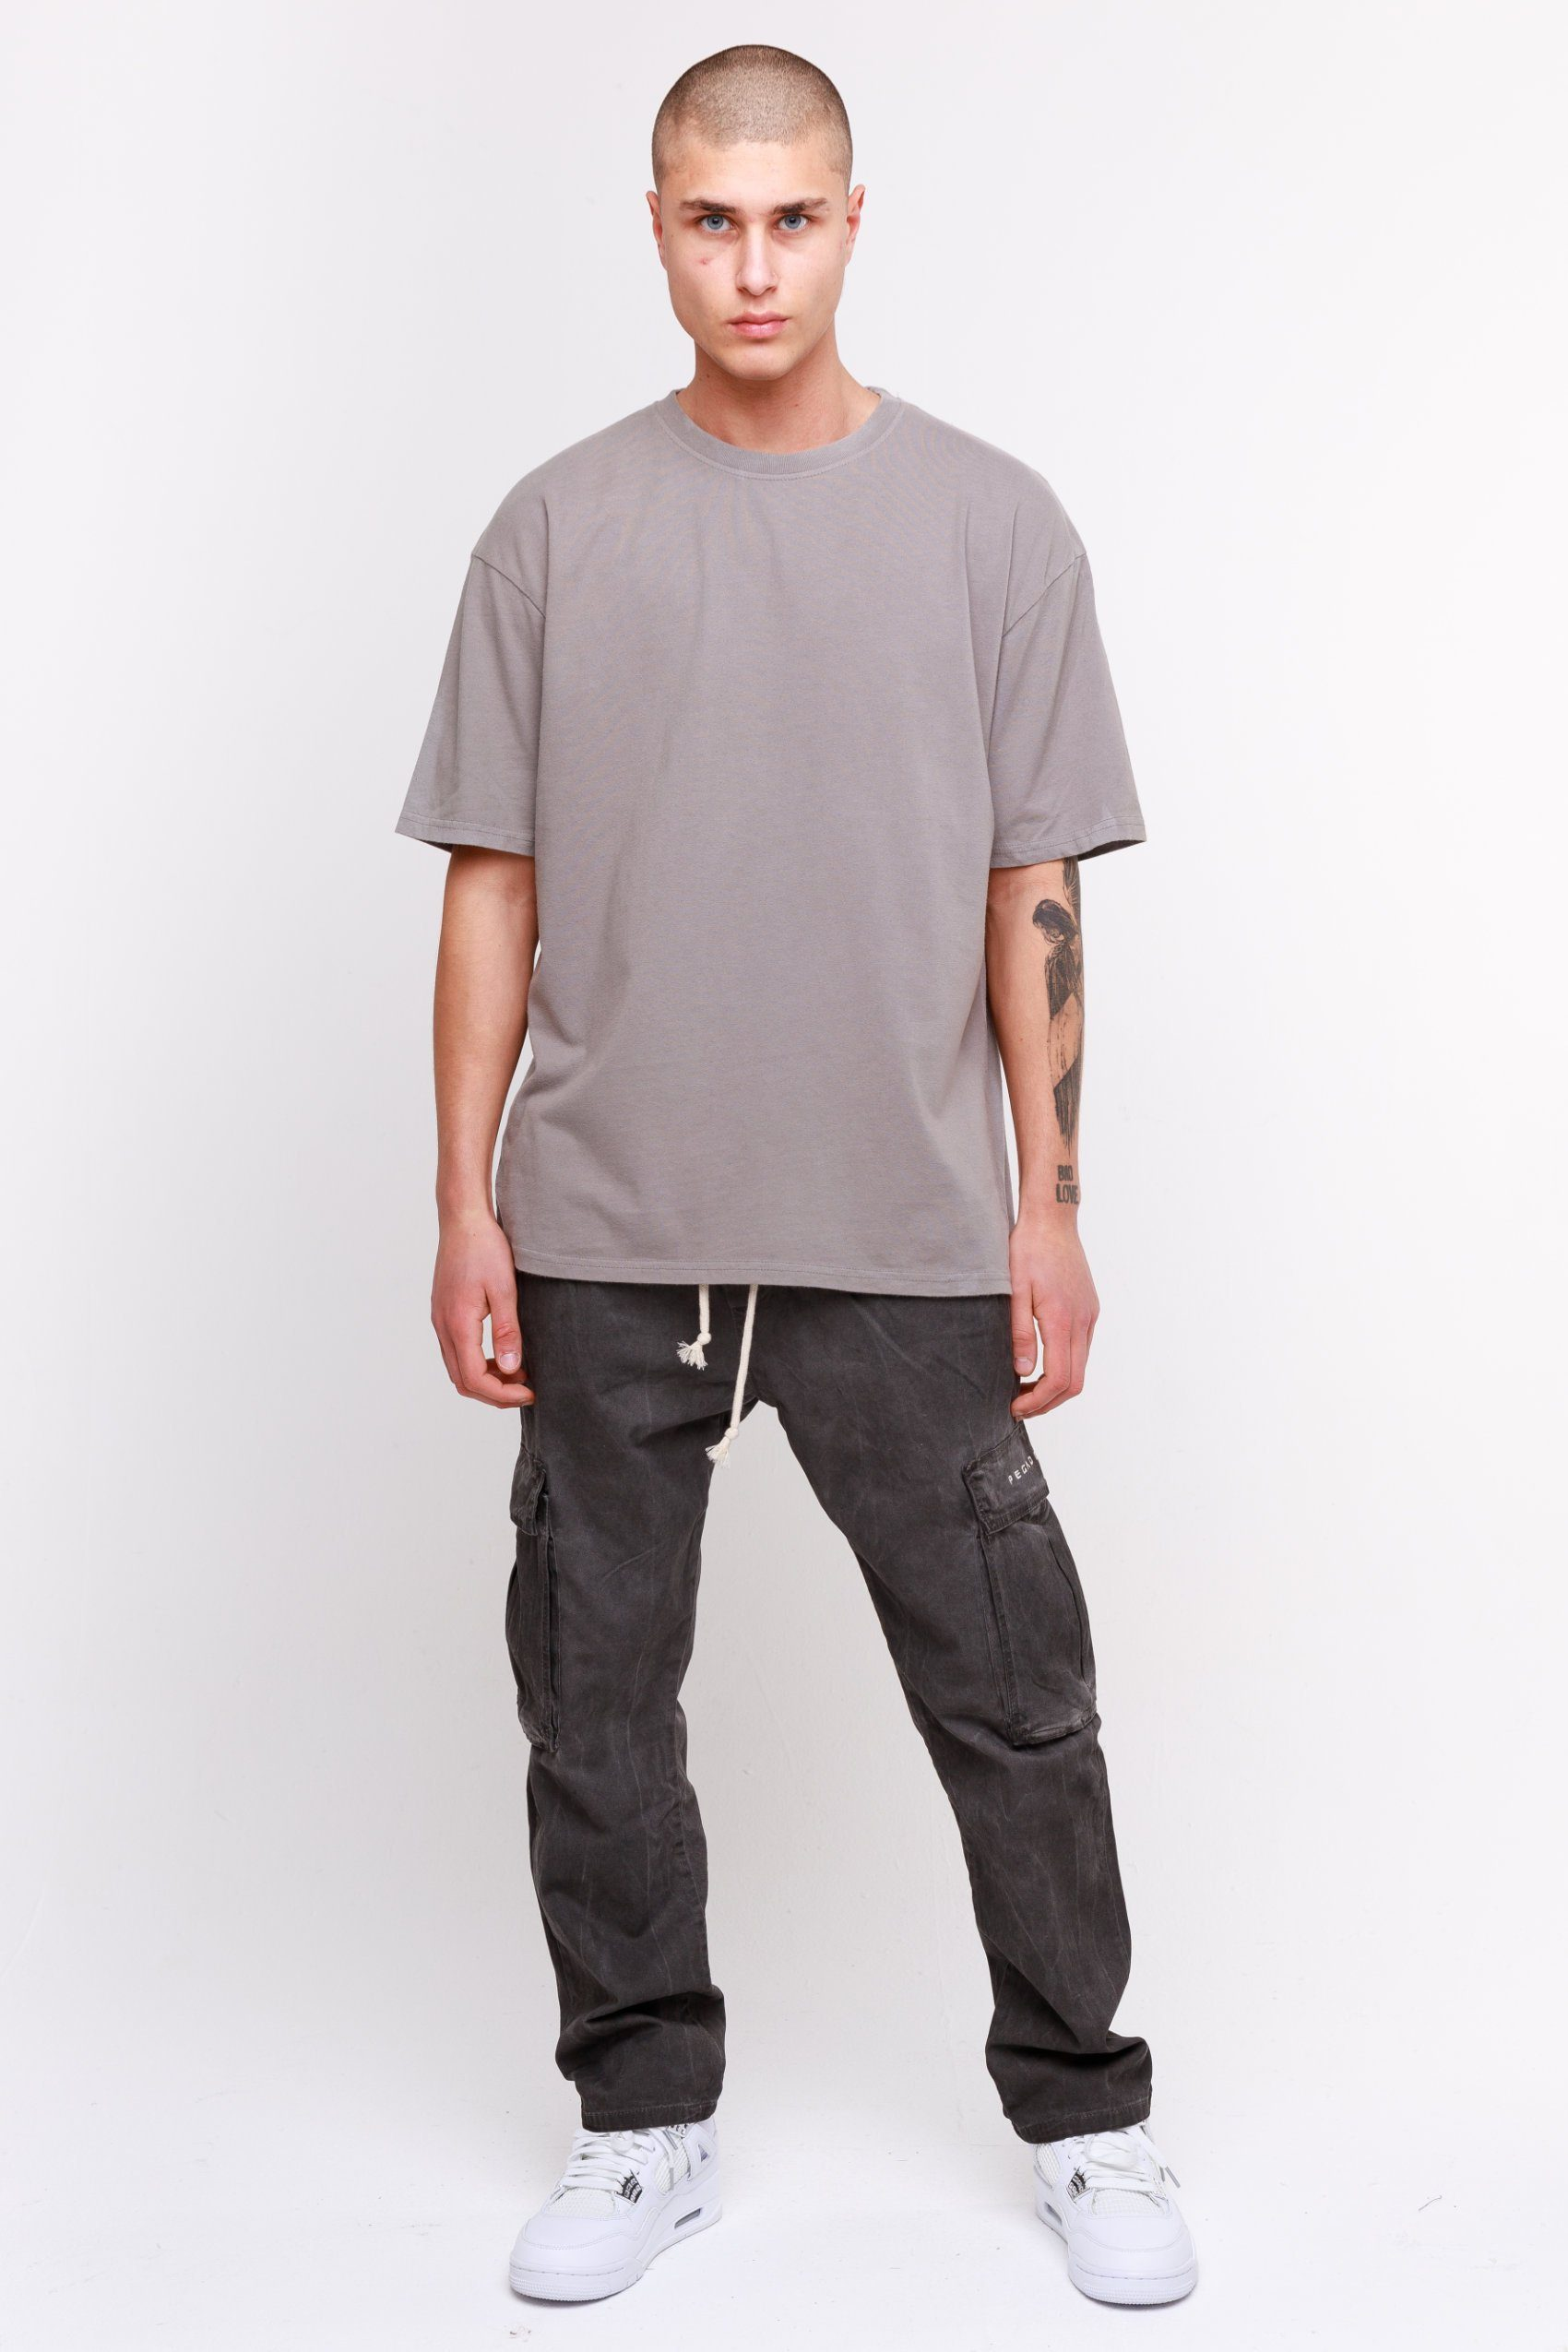 Oversized Tee Washed Frost Grey T-SHIRT Frozen